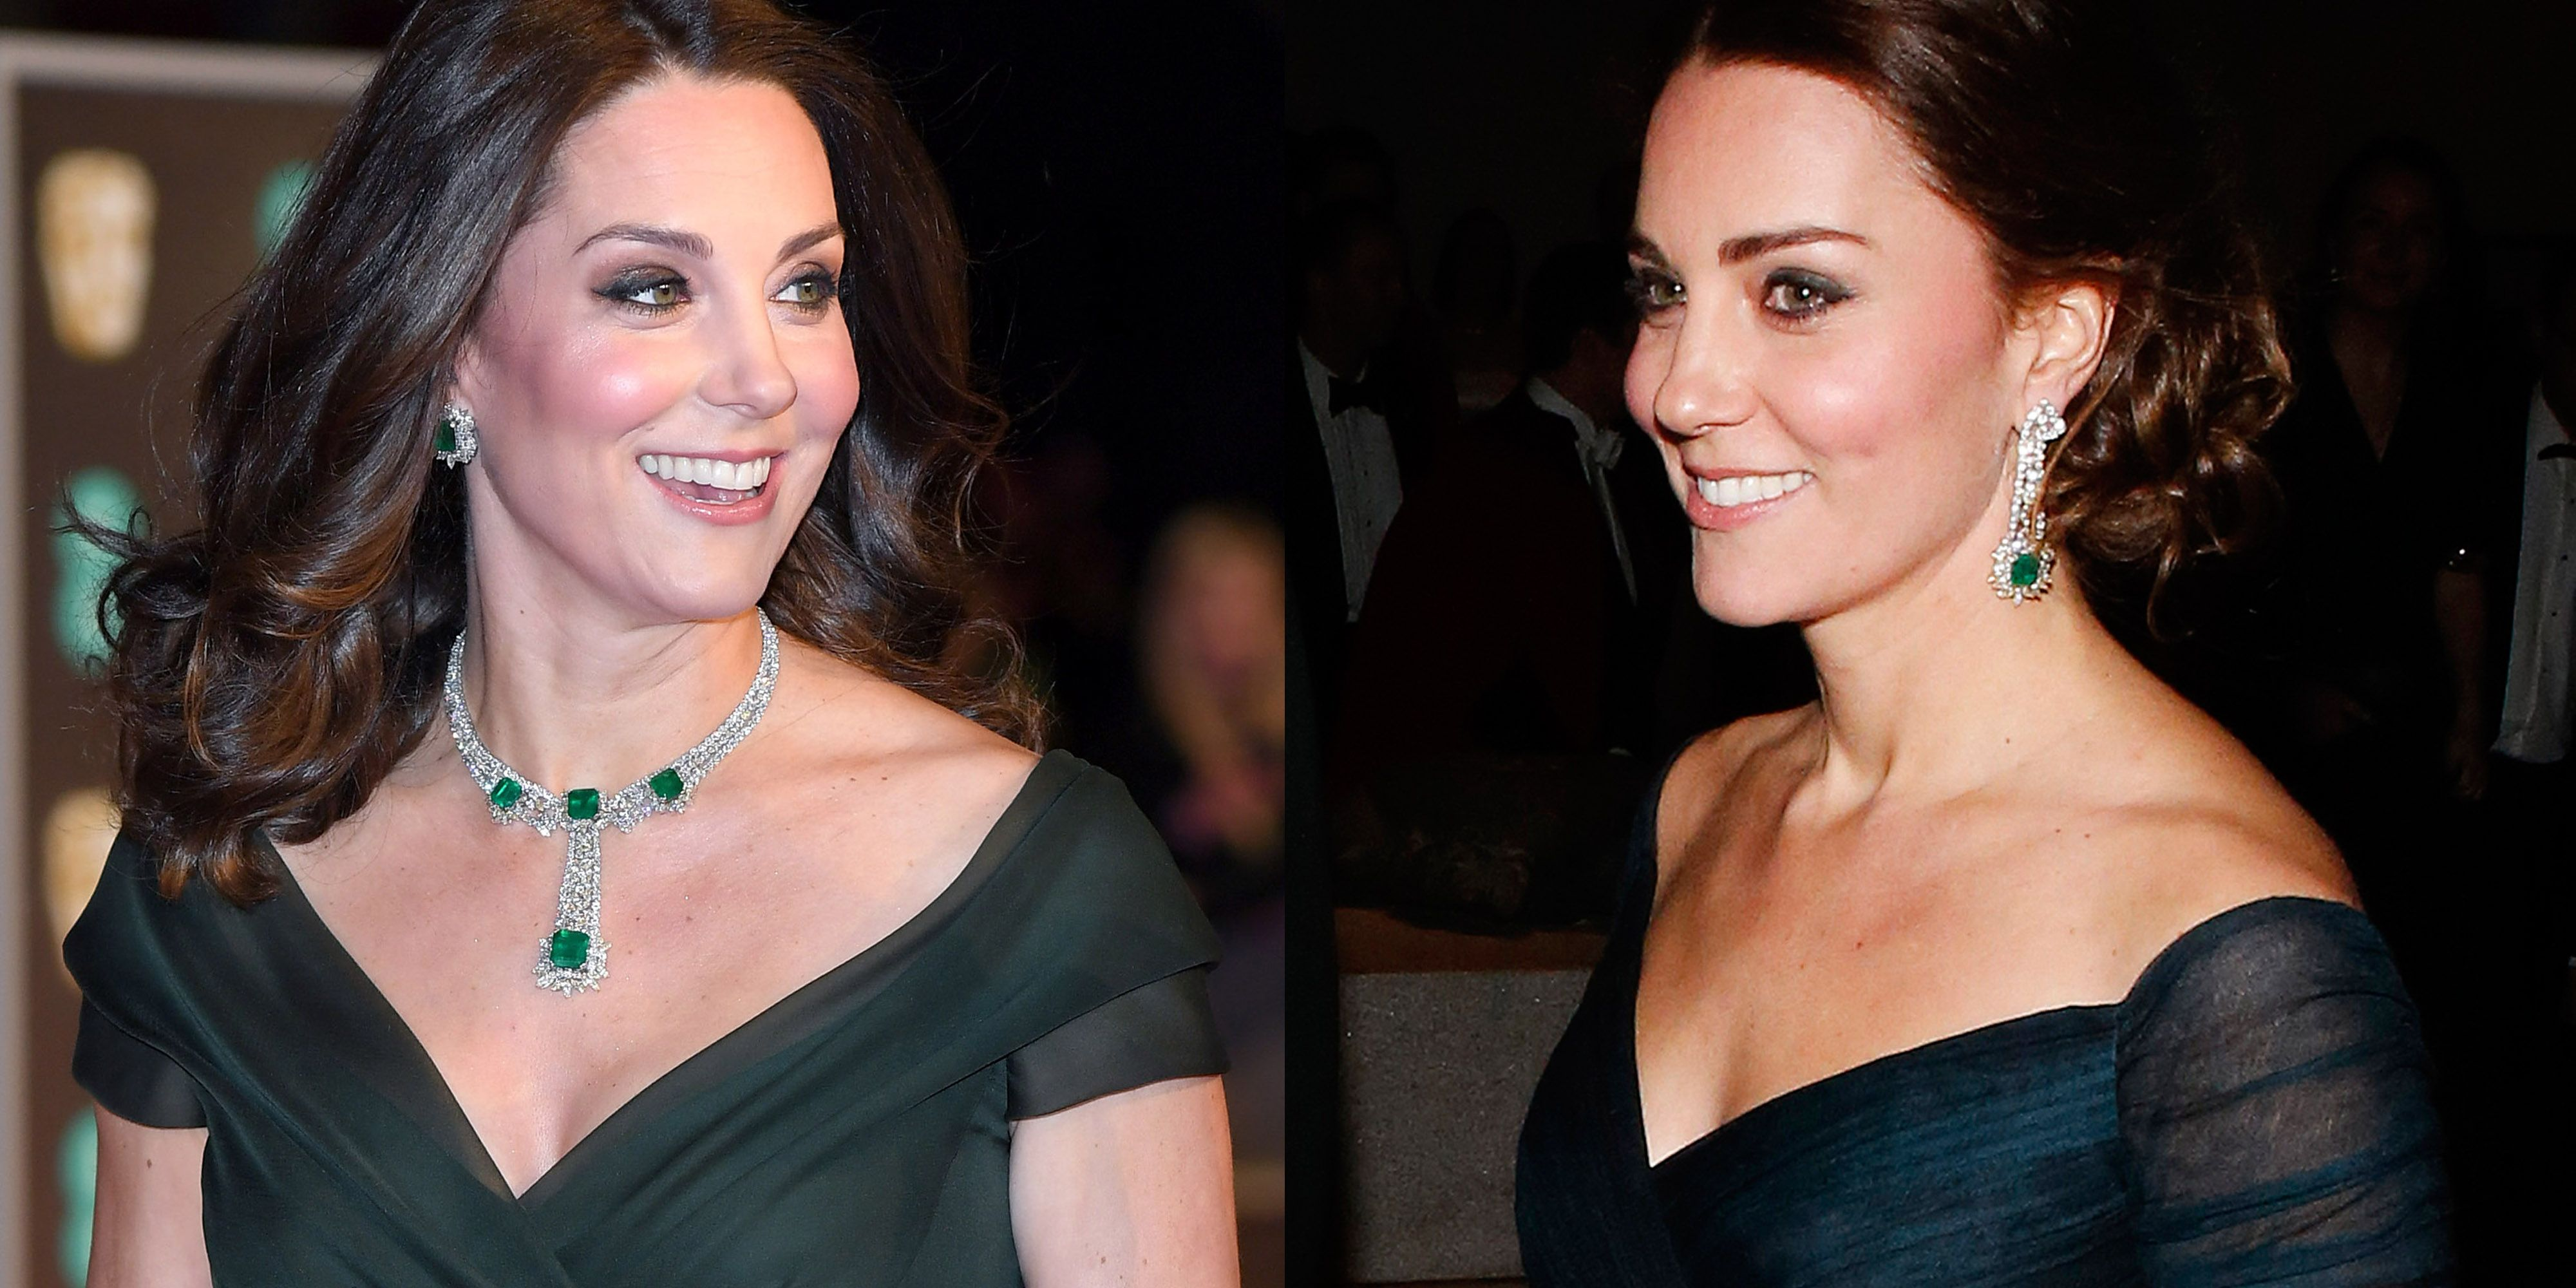 Kate Middleton Emerald Jewelry Duchess of Cambridge Redid Emerald